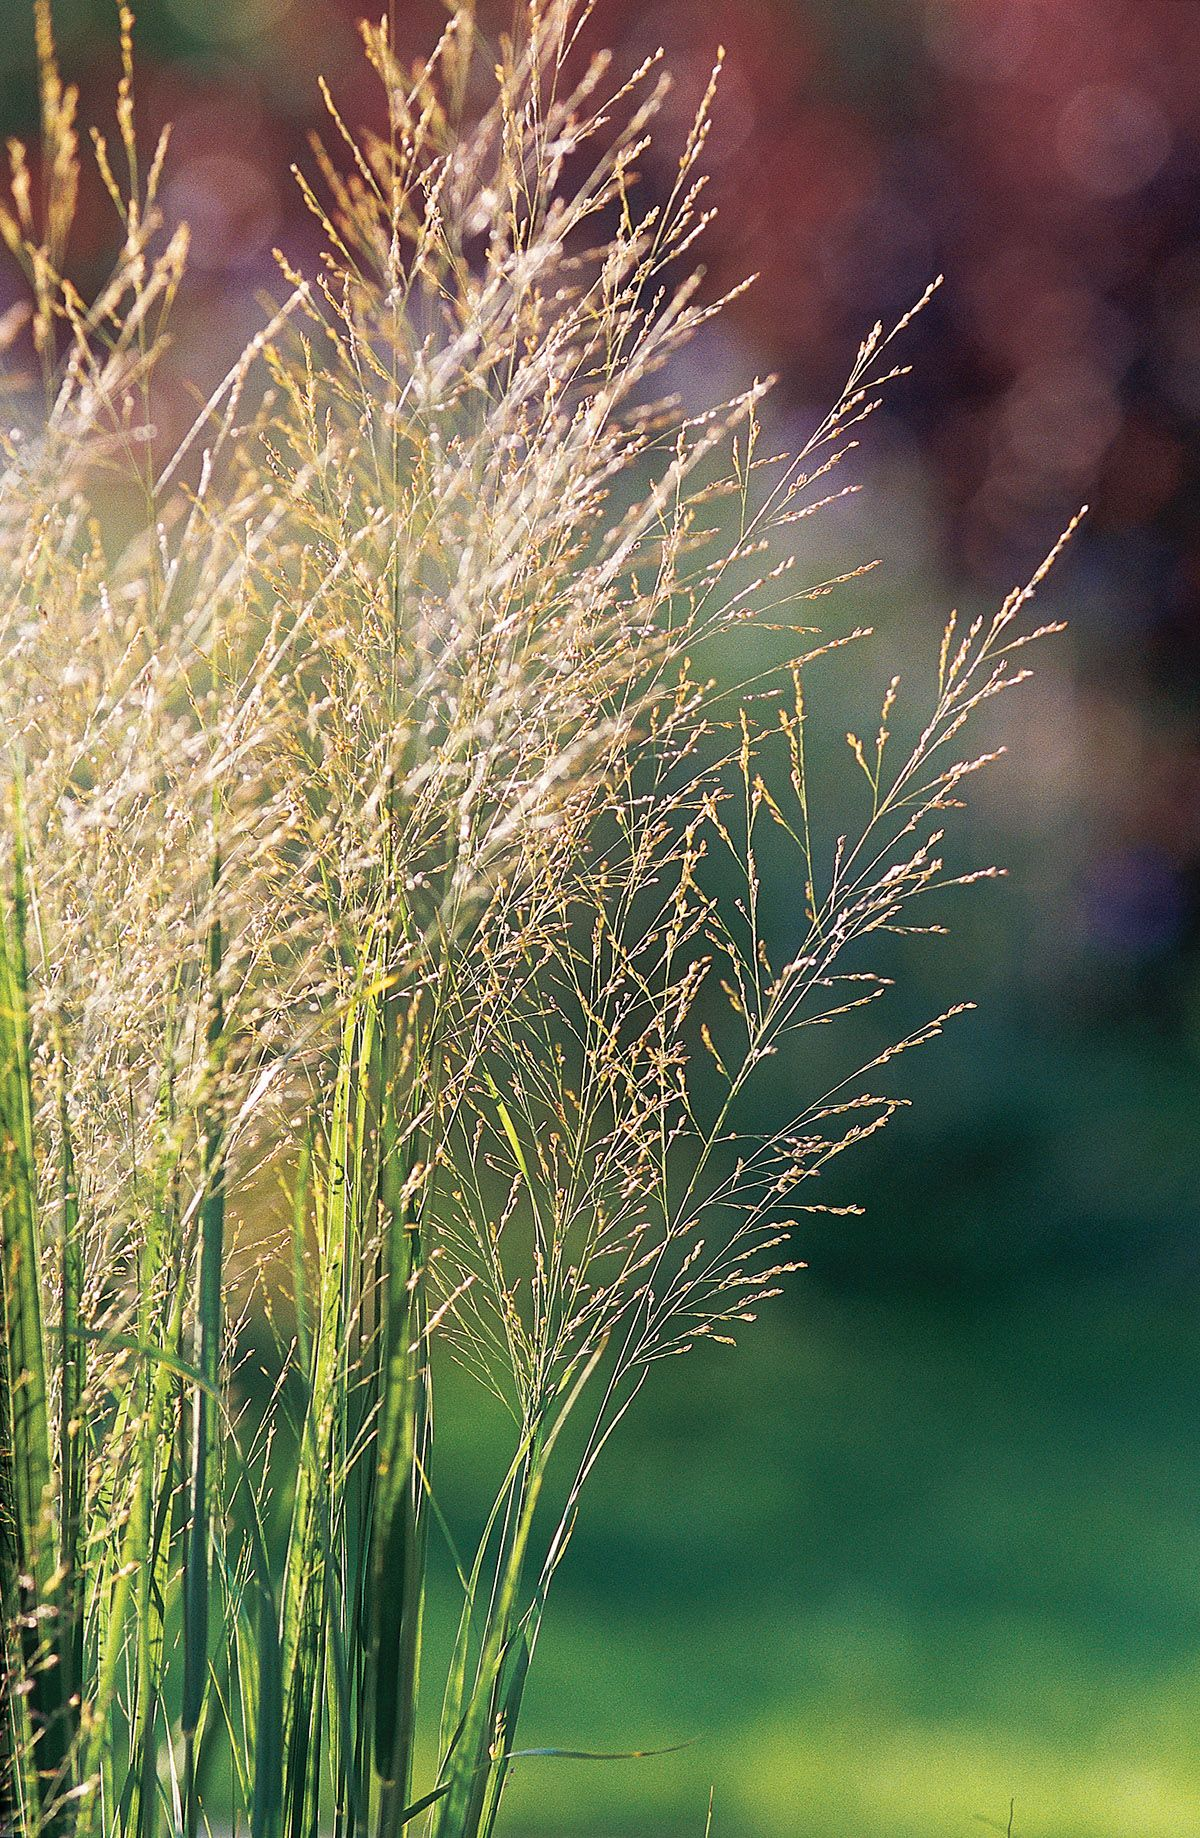 21 Of The Best Ornamental Grasses To Add Unbeatable Texture To Your Garden Ornamental Grasses Planting In Clay Perennials